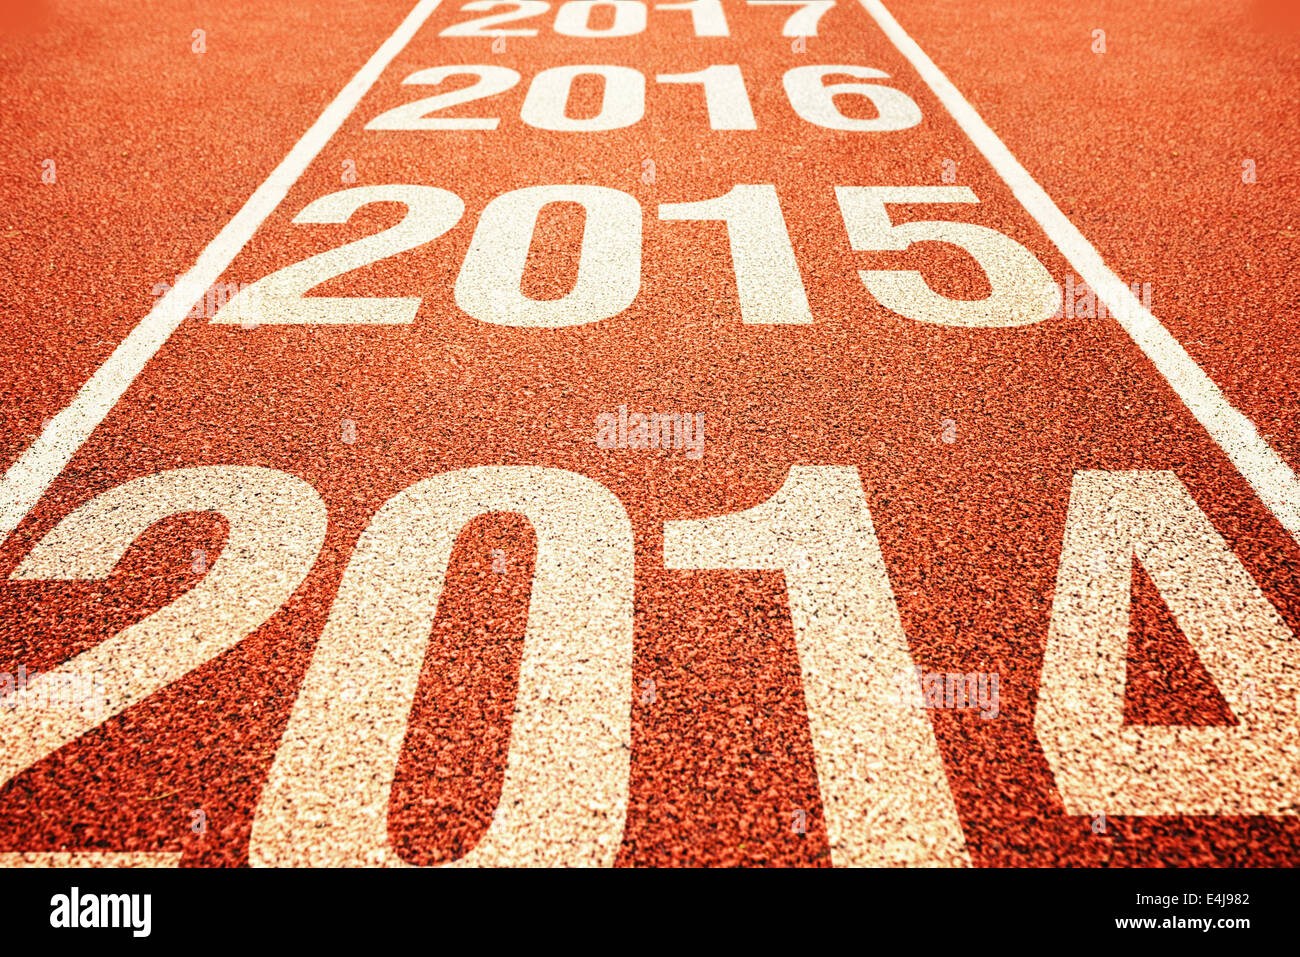 Number 2015 on athletics all weather running track with preceding and following years. Happy new 2015 year. - Stock Image